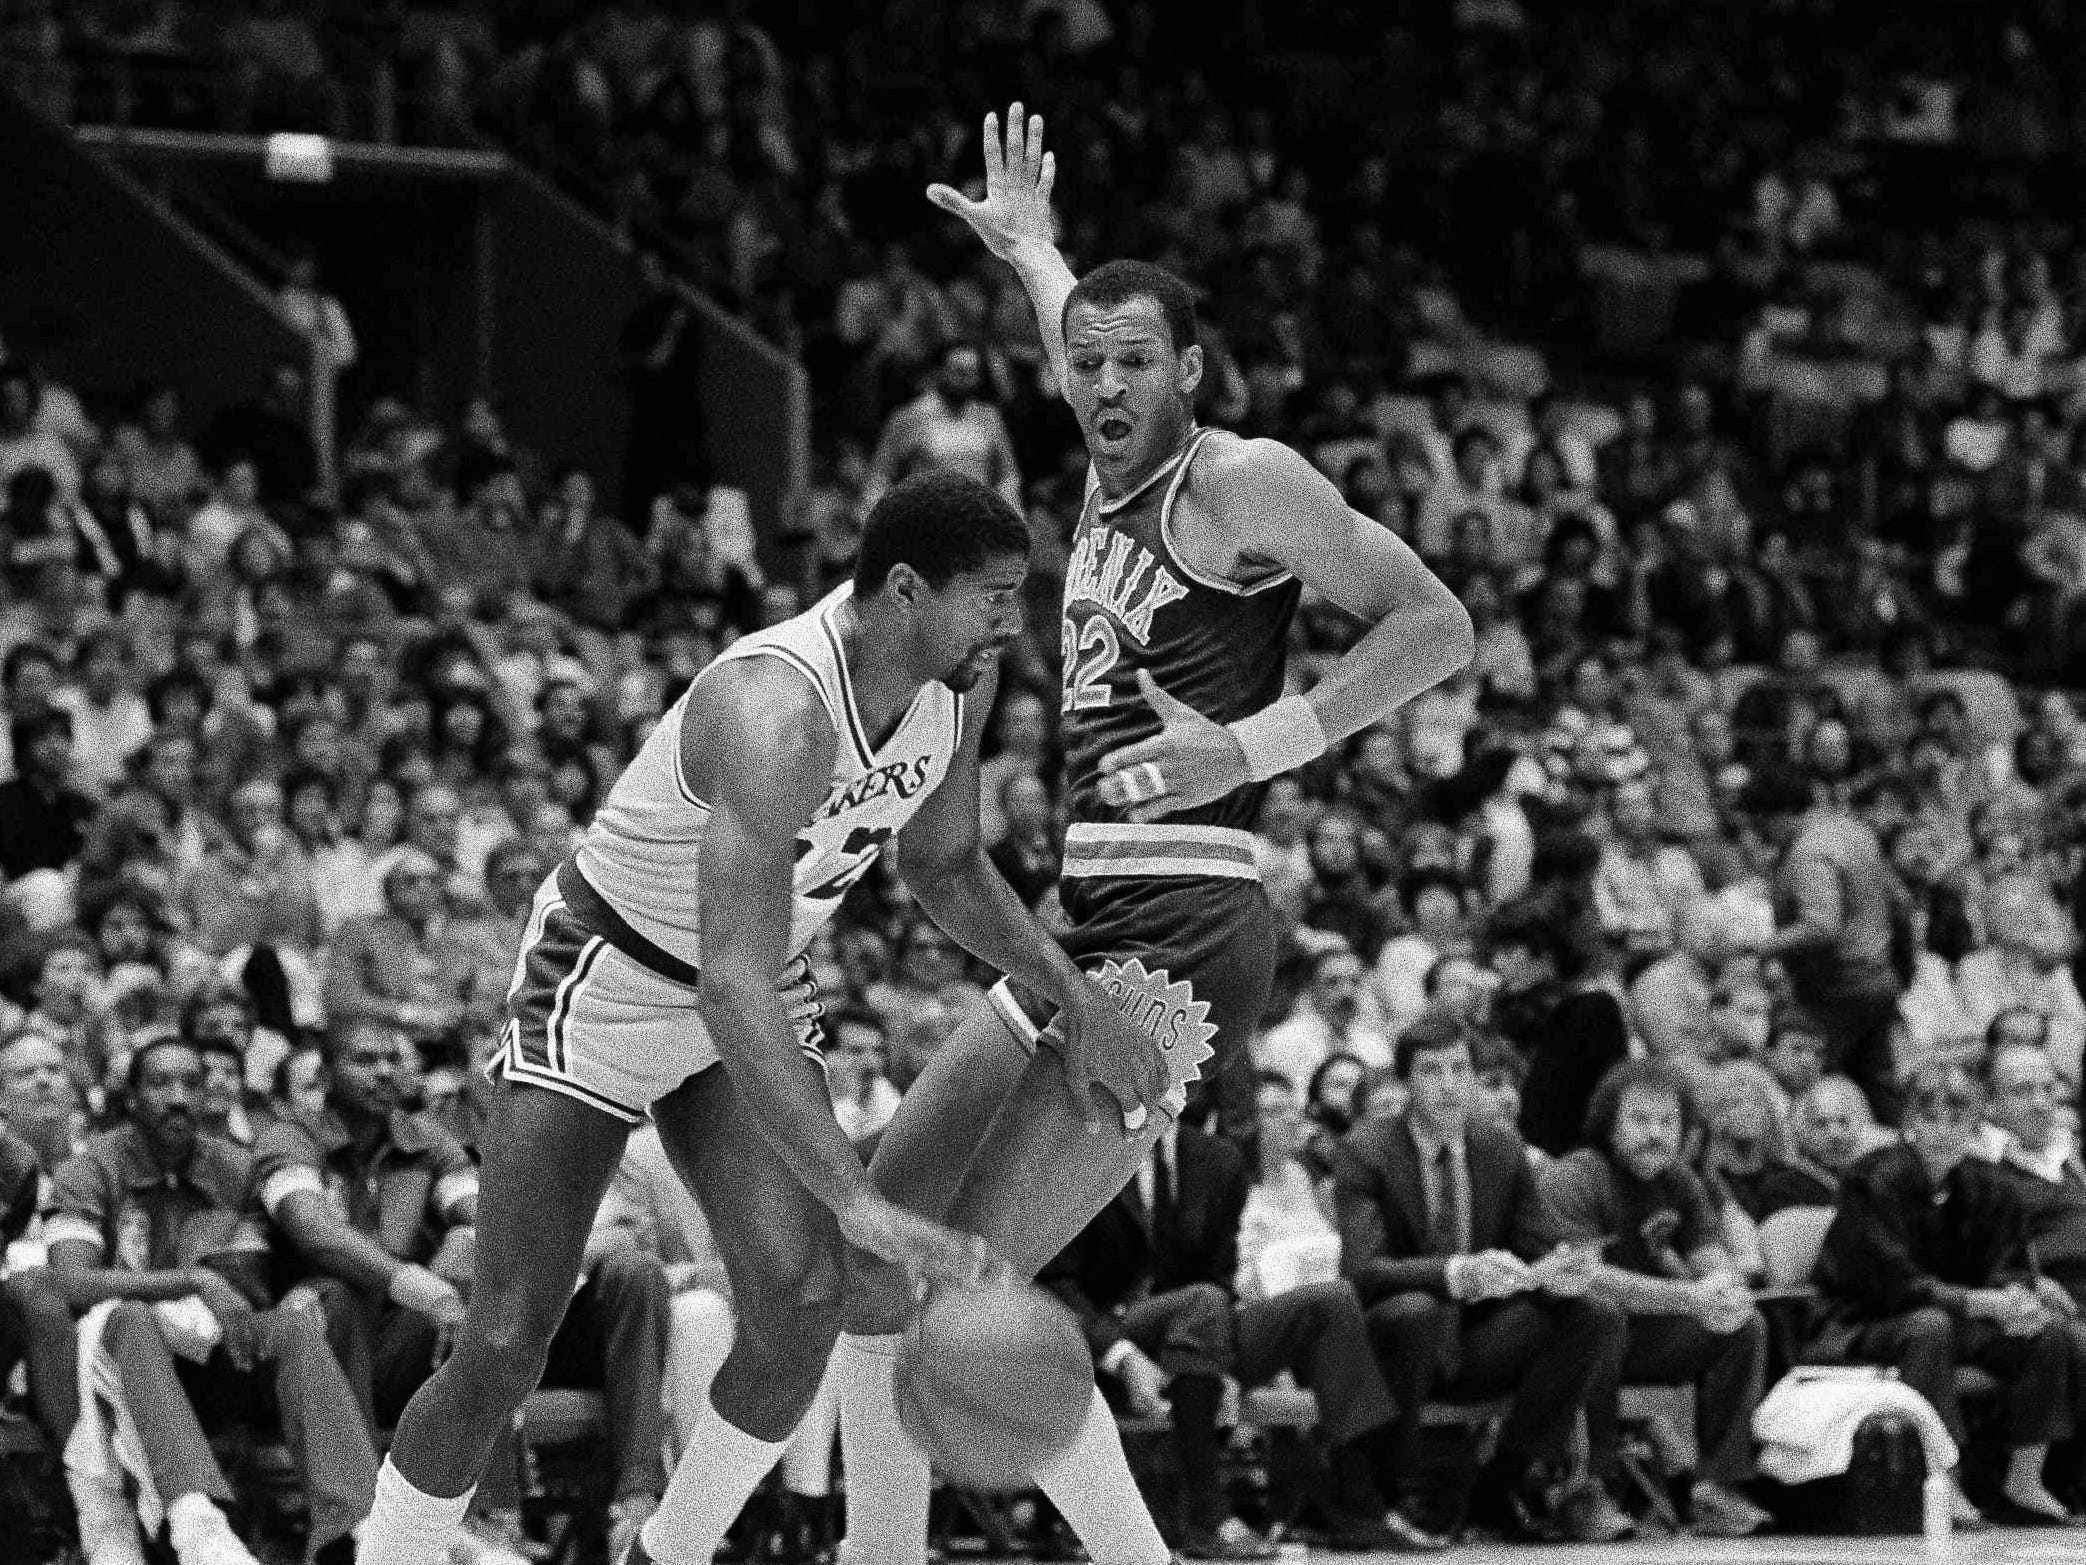 1985-86 | Suns MVP: Larry Nance. Nance averaged 20.2 points per game on 58 percent shooting. He also led the team in rebounding.